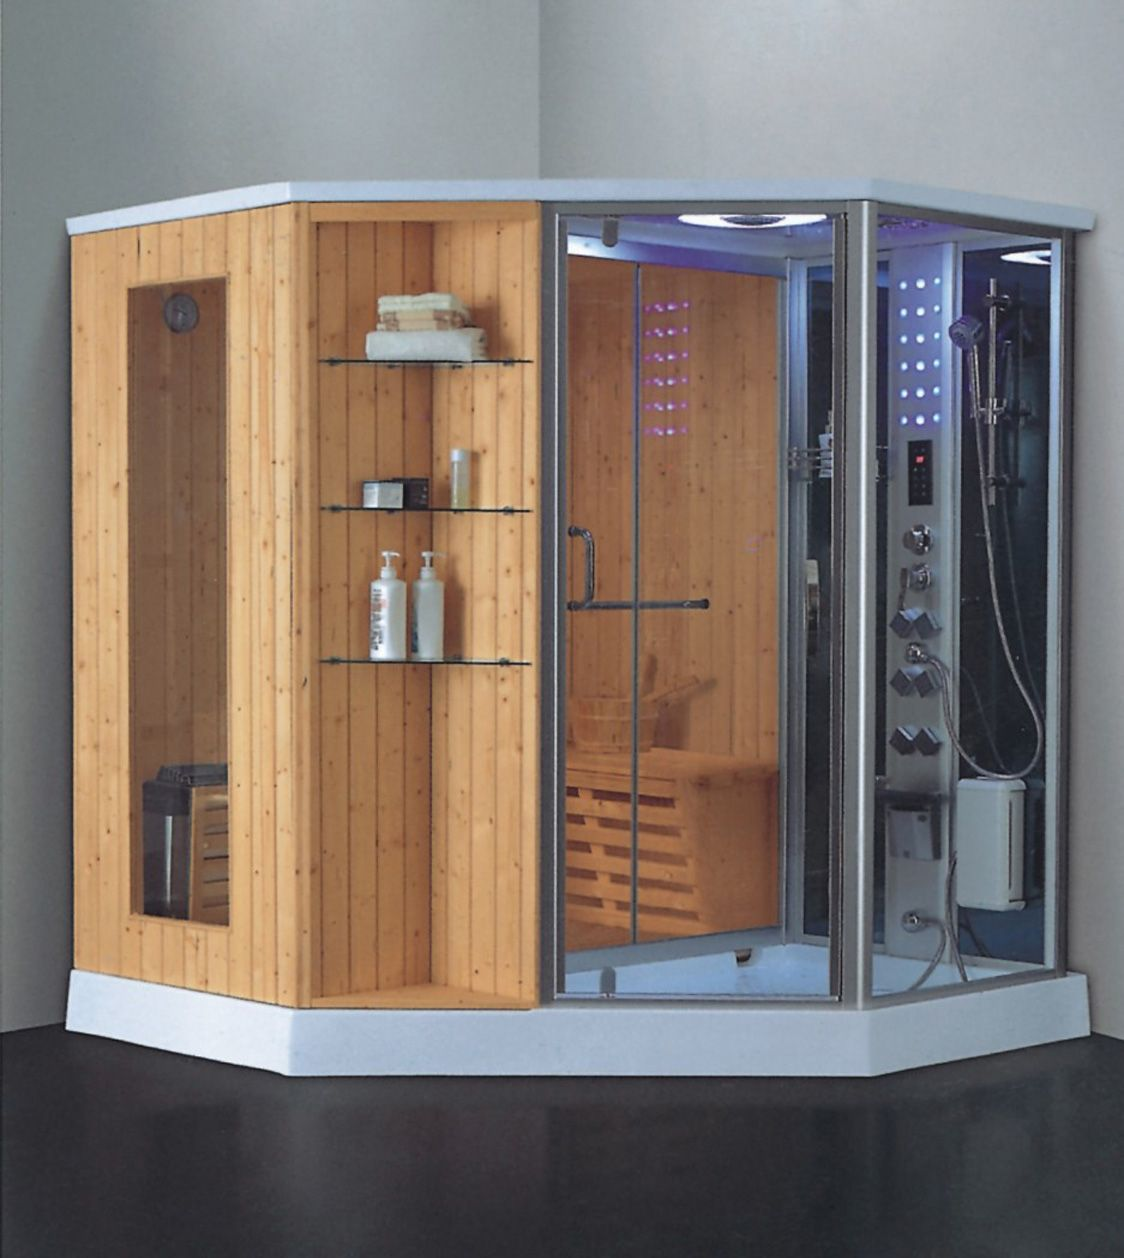 image result for steam shower sauna combo | bathroom in 2018